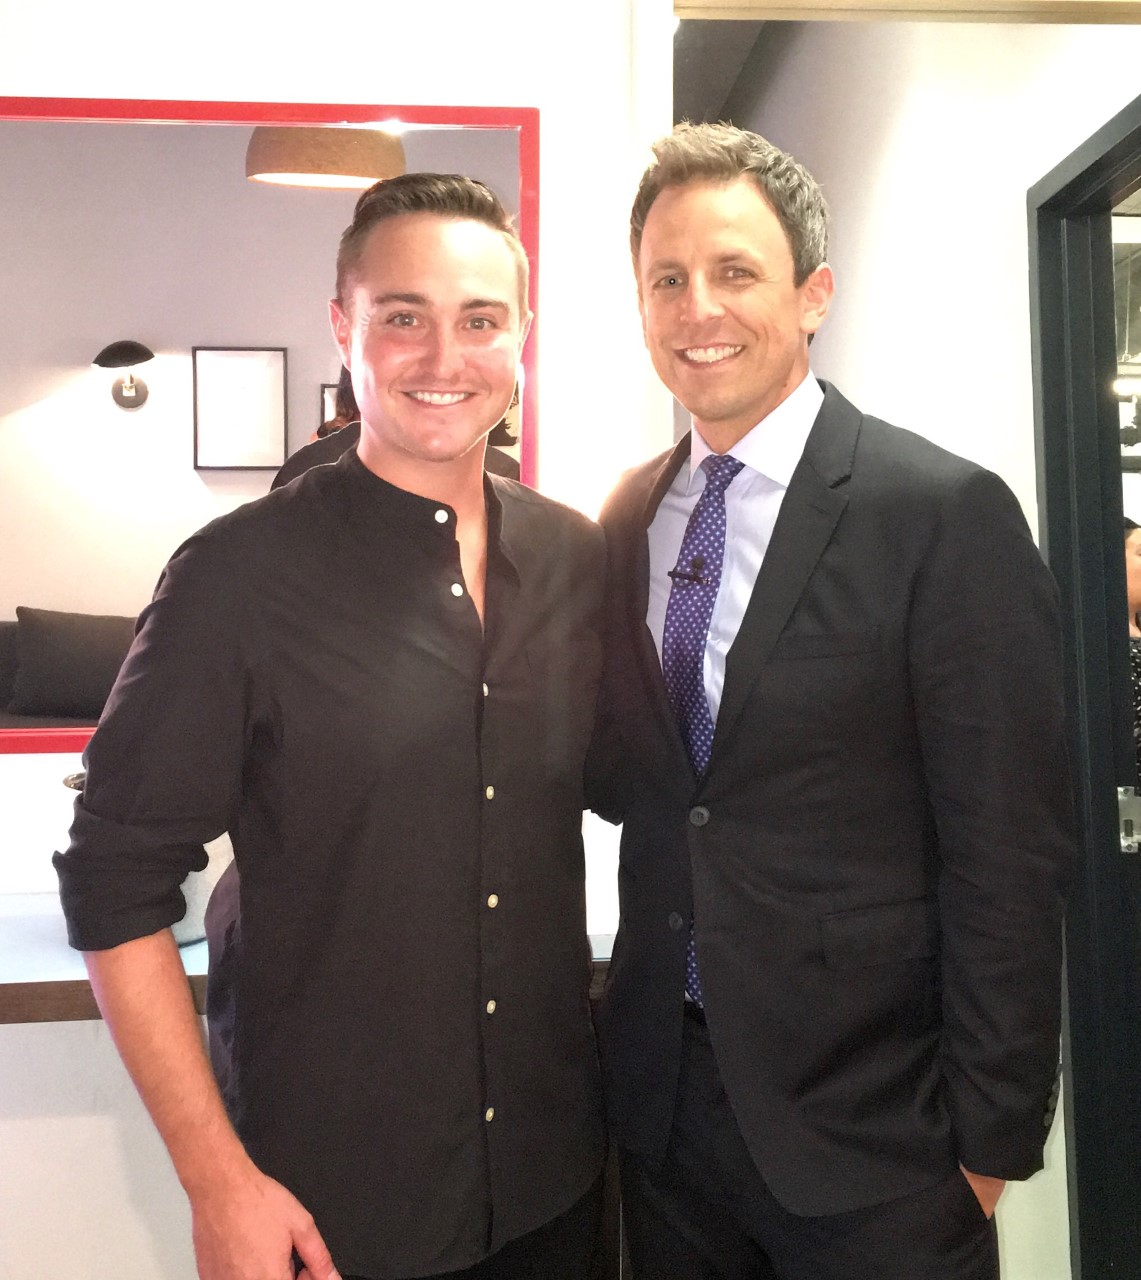 Backstage with Seth before the show.